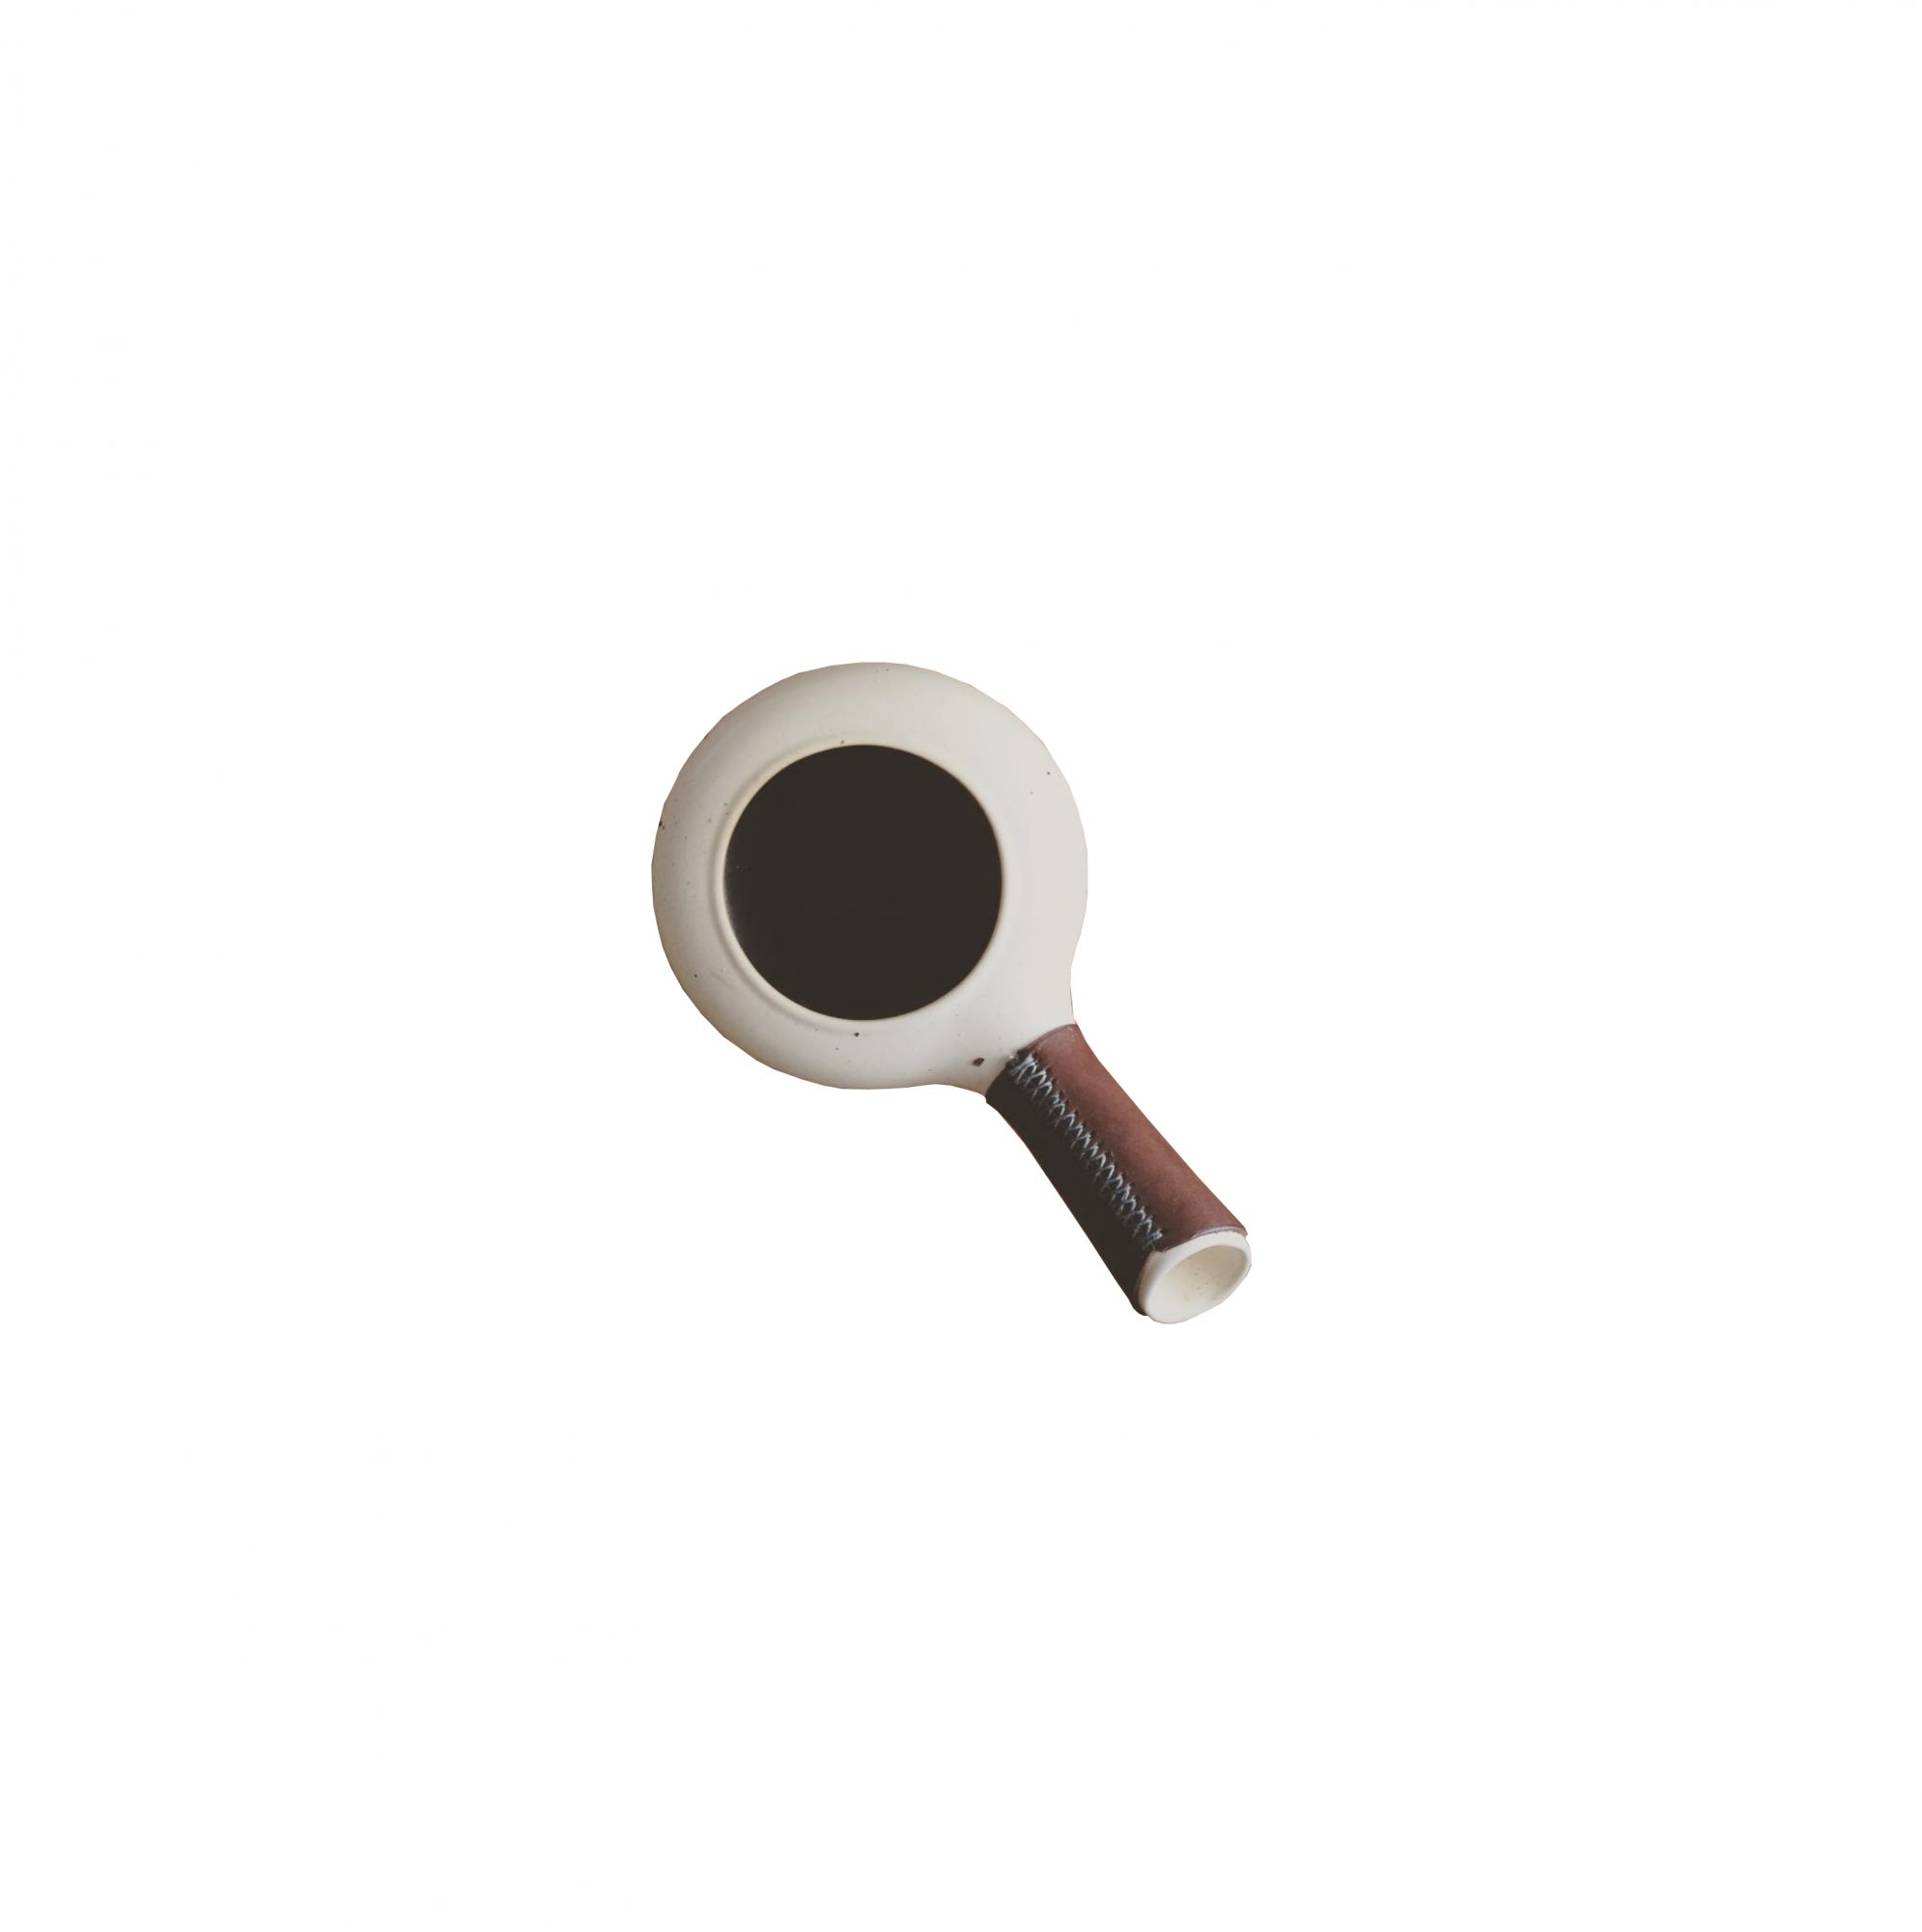 Zenroast Roasting Tool